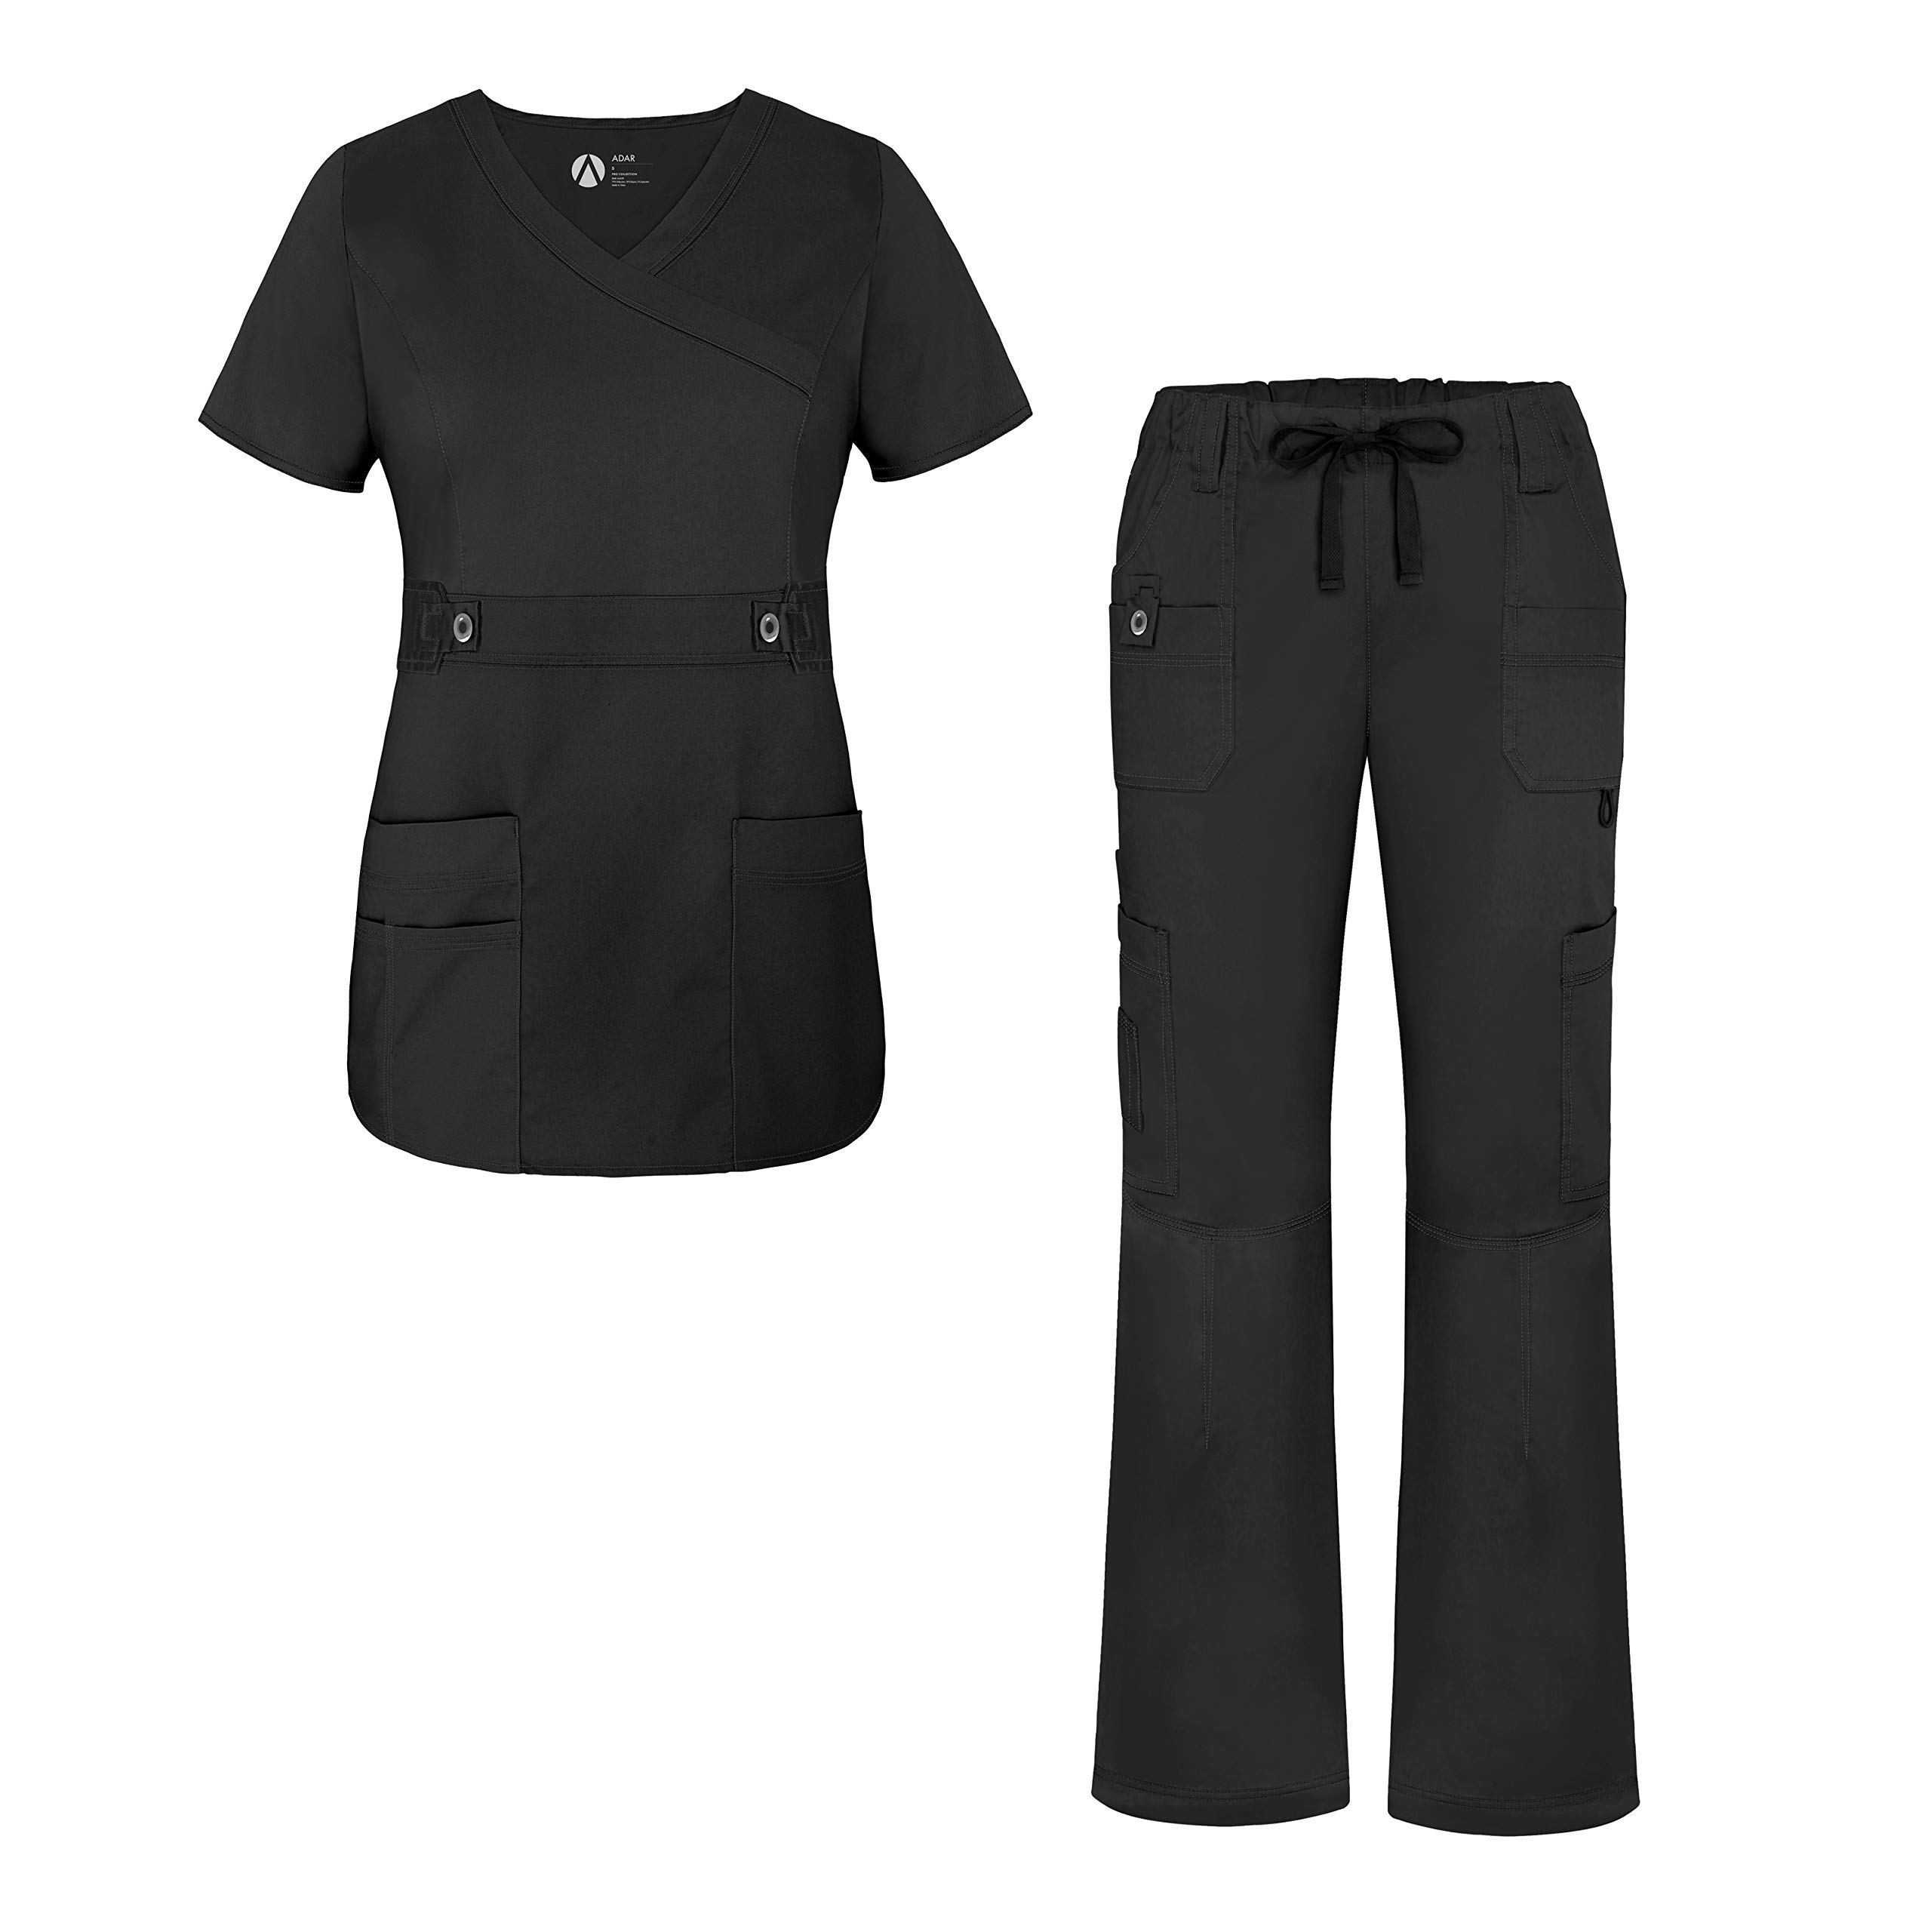 Adar Active Classic Scrub Set for Women - Crossover Top and Multi Pocket Pants